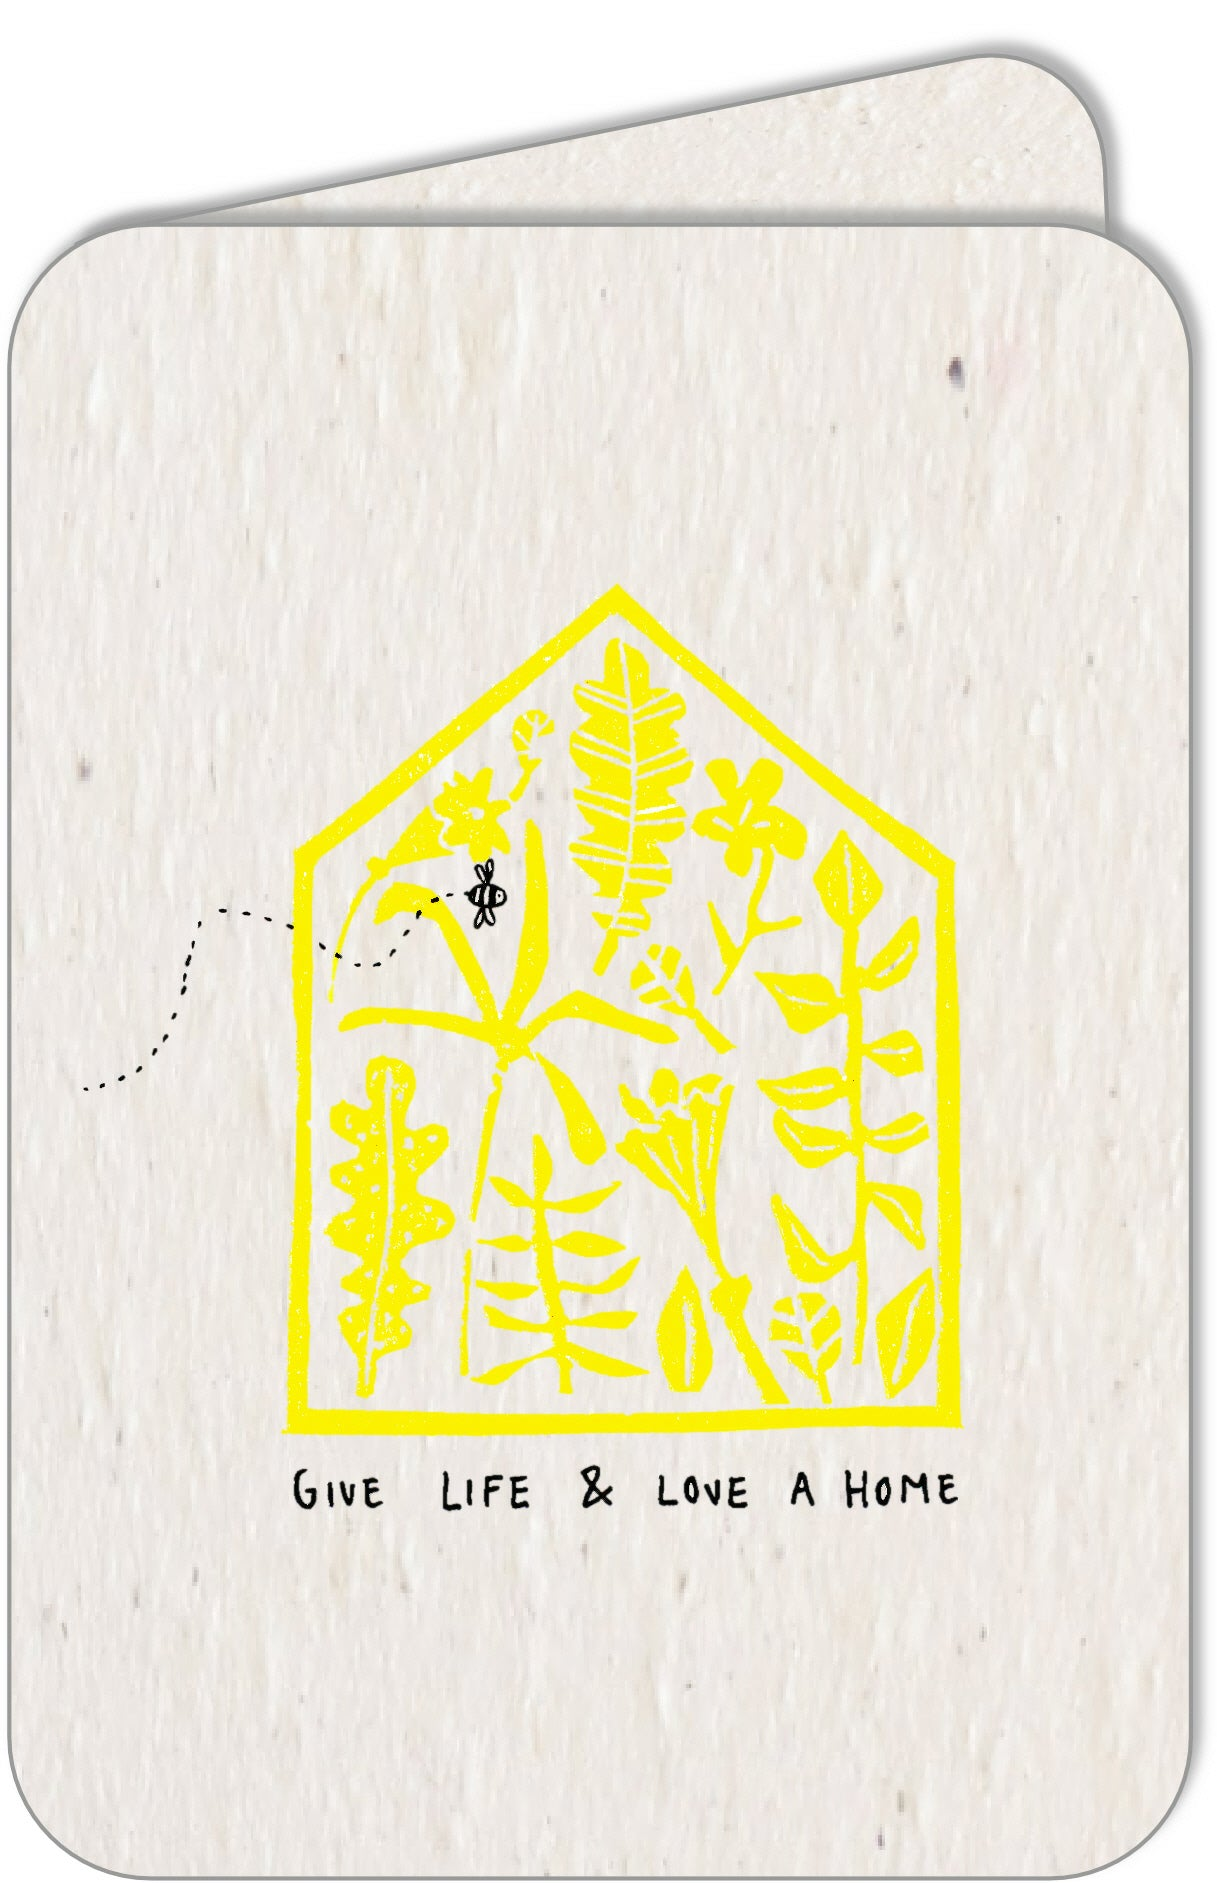 GIVE LIFE & LOVE A HOME  •  A4 print & set of 5 cards